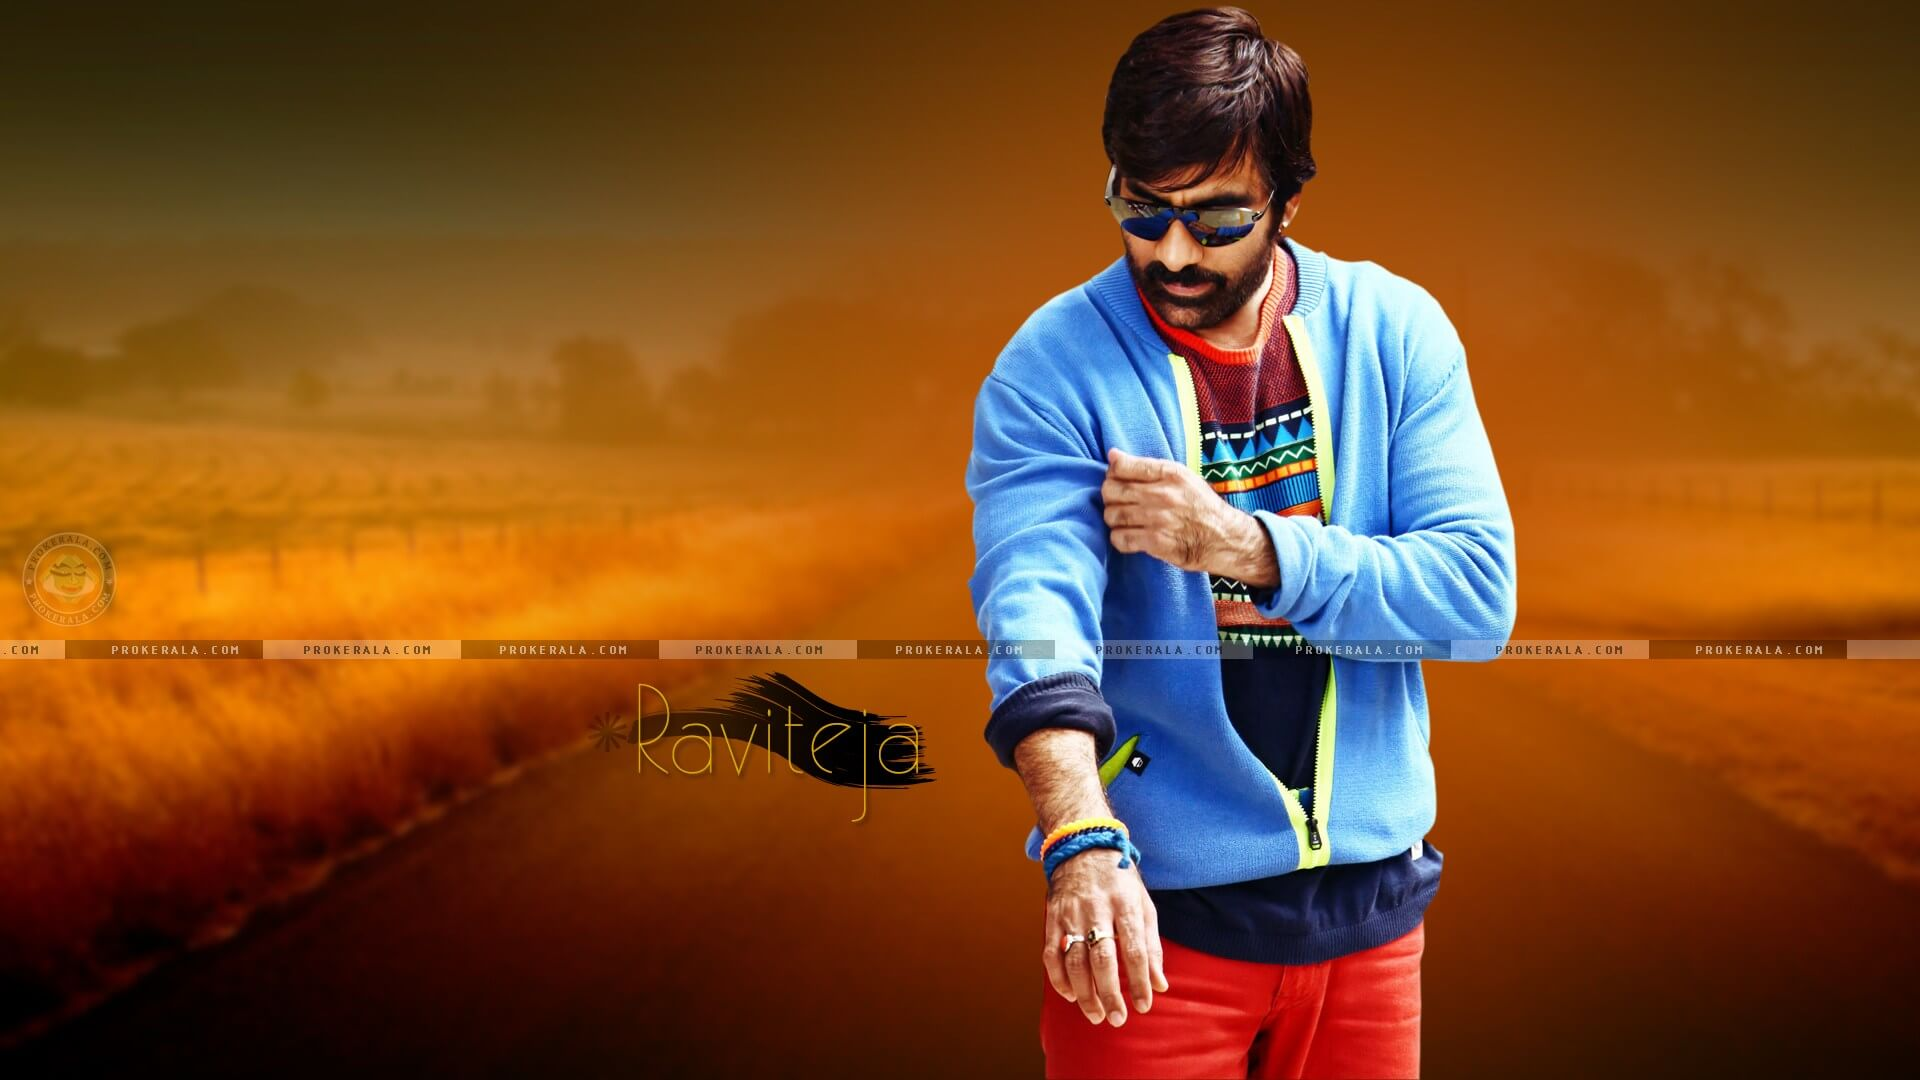 Ravi Teja Movie, Photos(images), Date Of Birth, Family, Brother, Height, Biography, Net Worth, Age, Wife, Details, Education, Instagram, Twitter, Wiki, Imdb, Facebook, Hairstyle, Youtube (4)